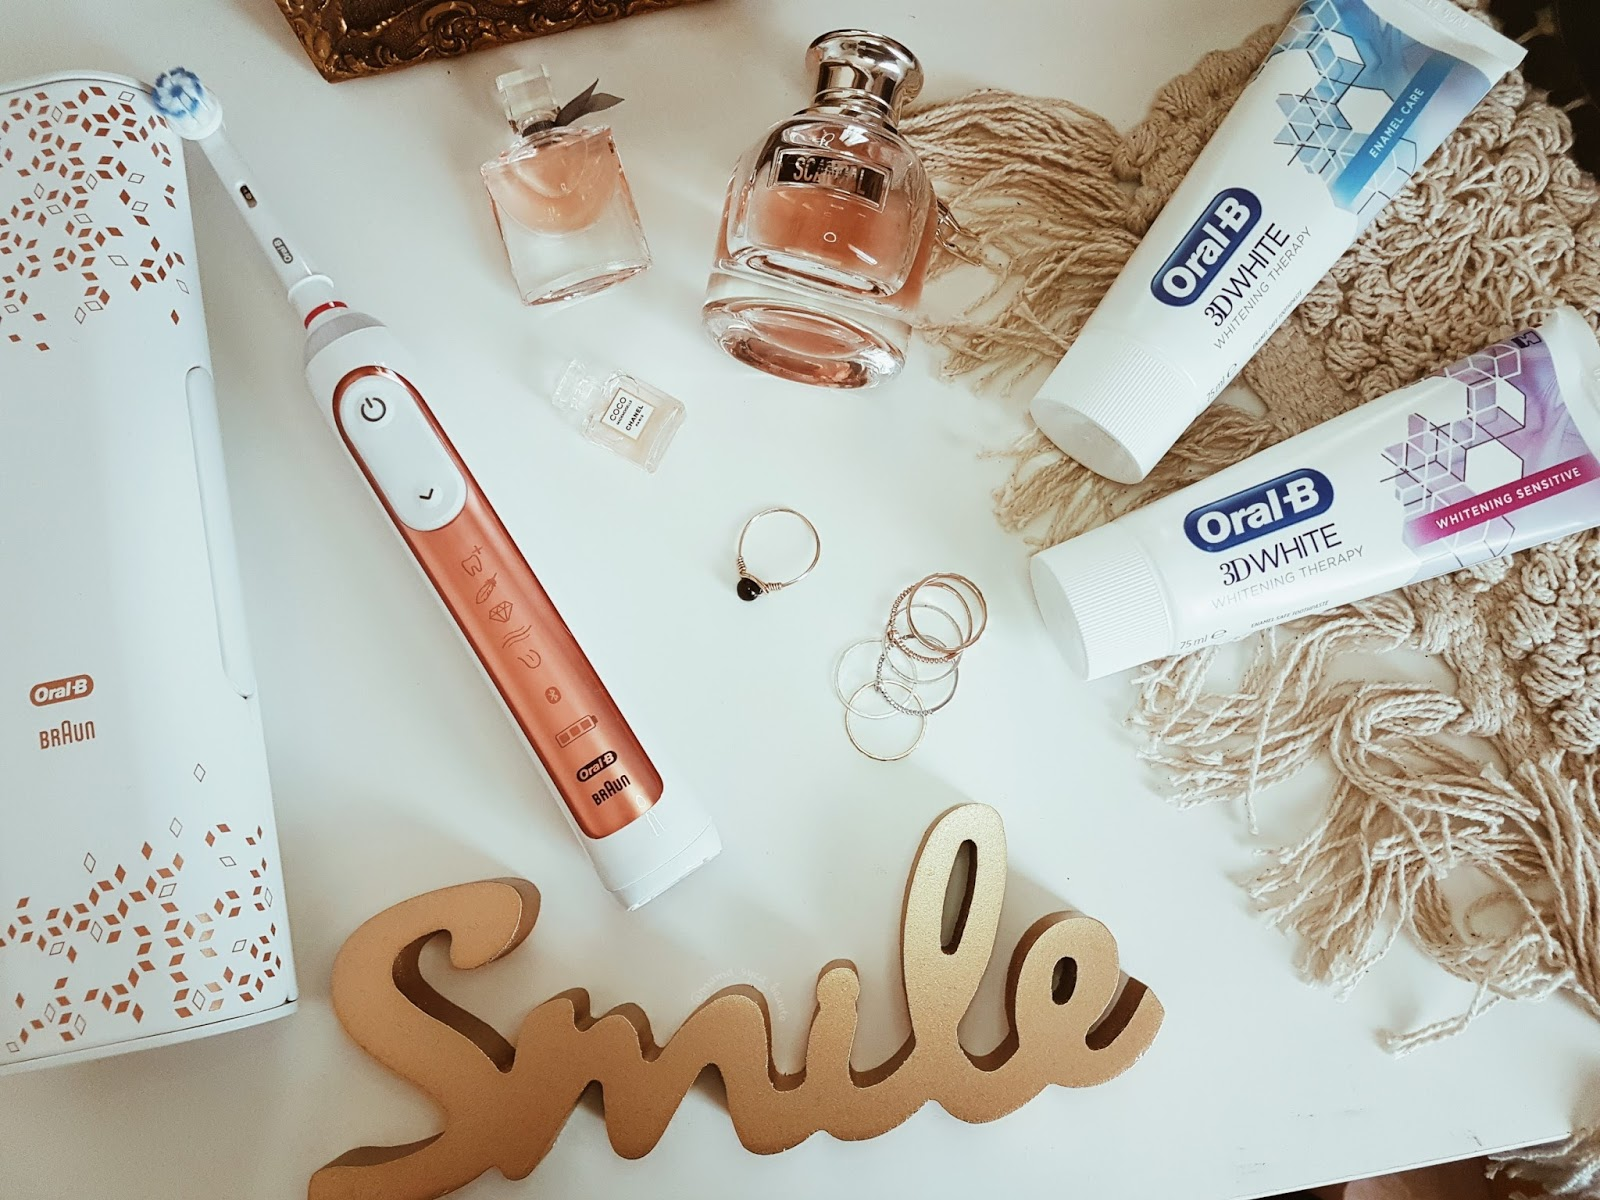 avis-dentifrice_oral-b-3d-white-whitening-therapy-brosse-a-dents-genius-9000n-rosegold-concours-mama-syca-beaute